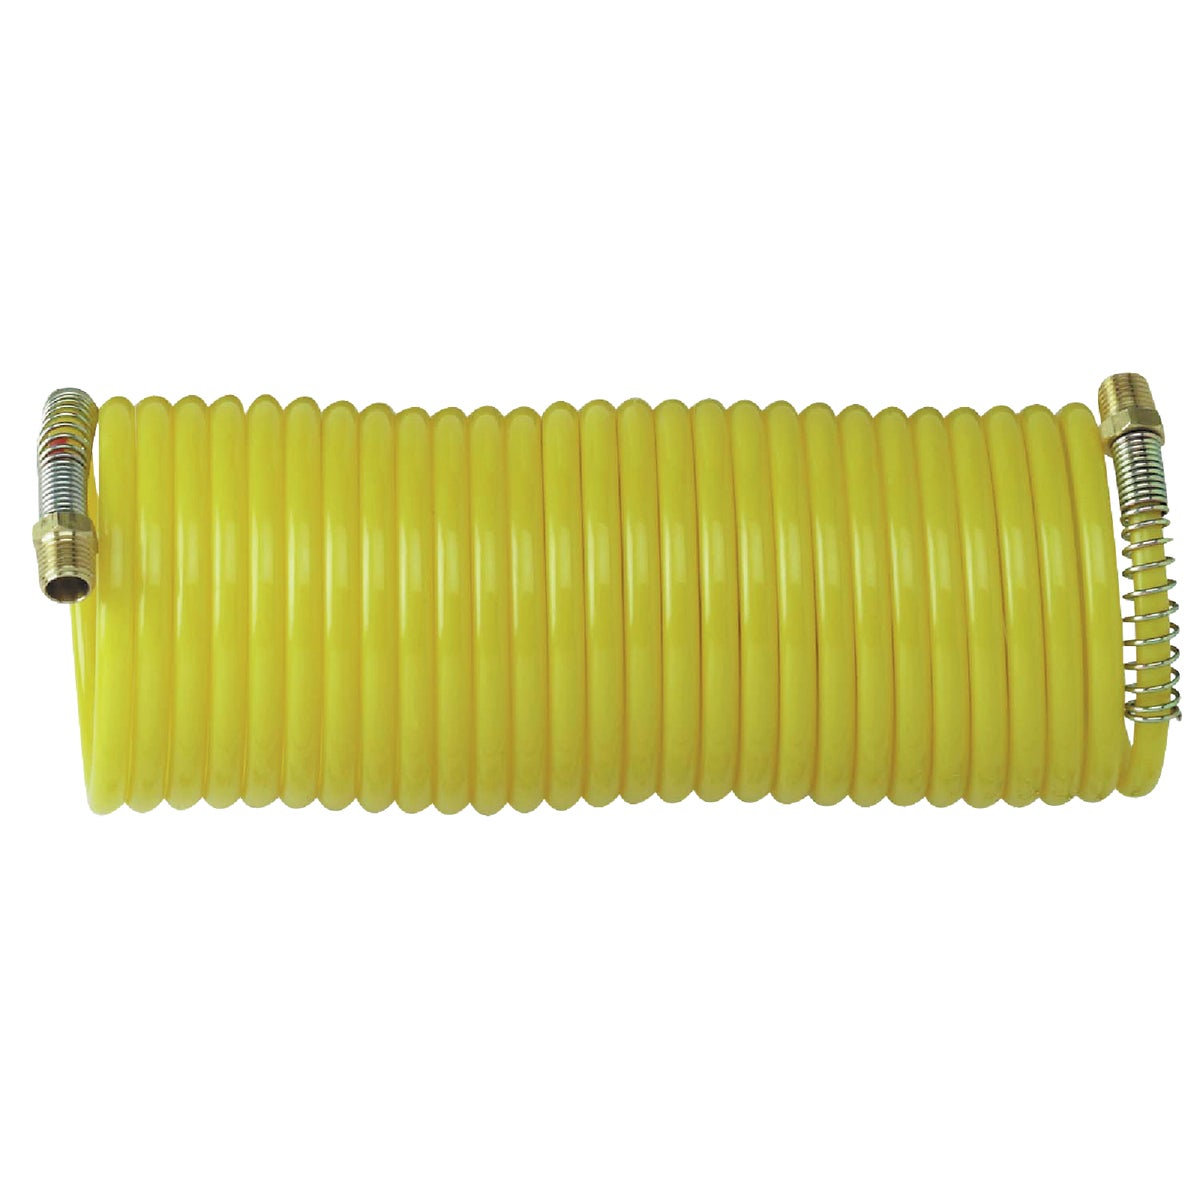 Campbell-Hausfeld 25' RECOIL HOSE MP2681